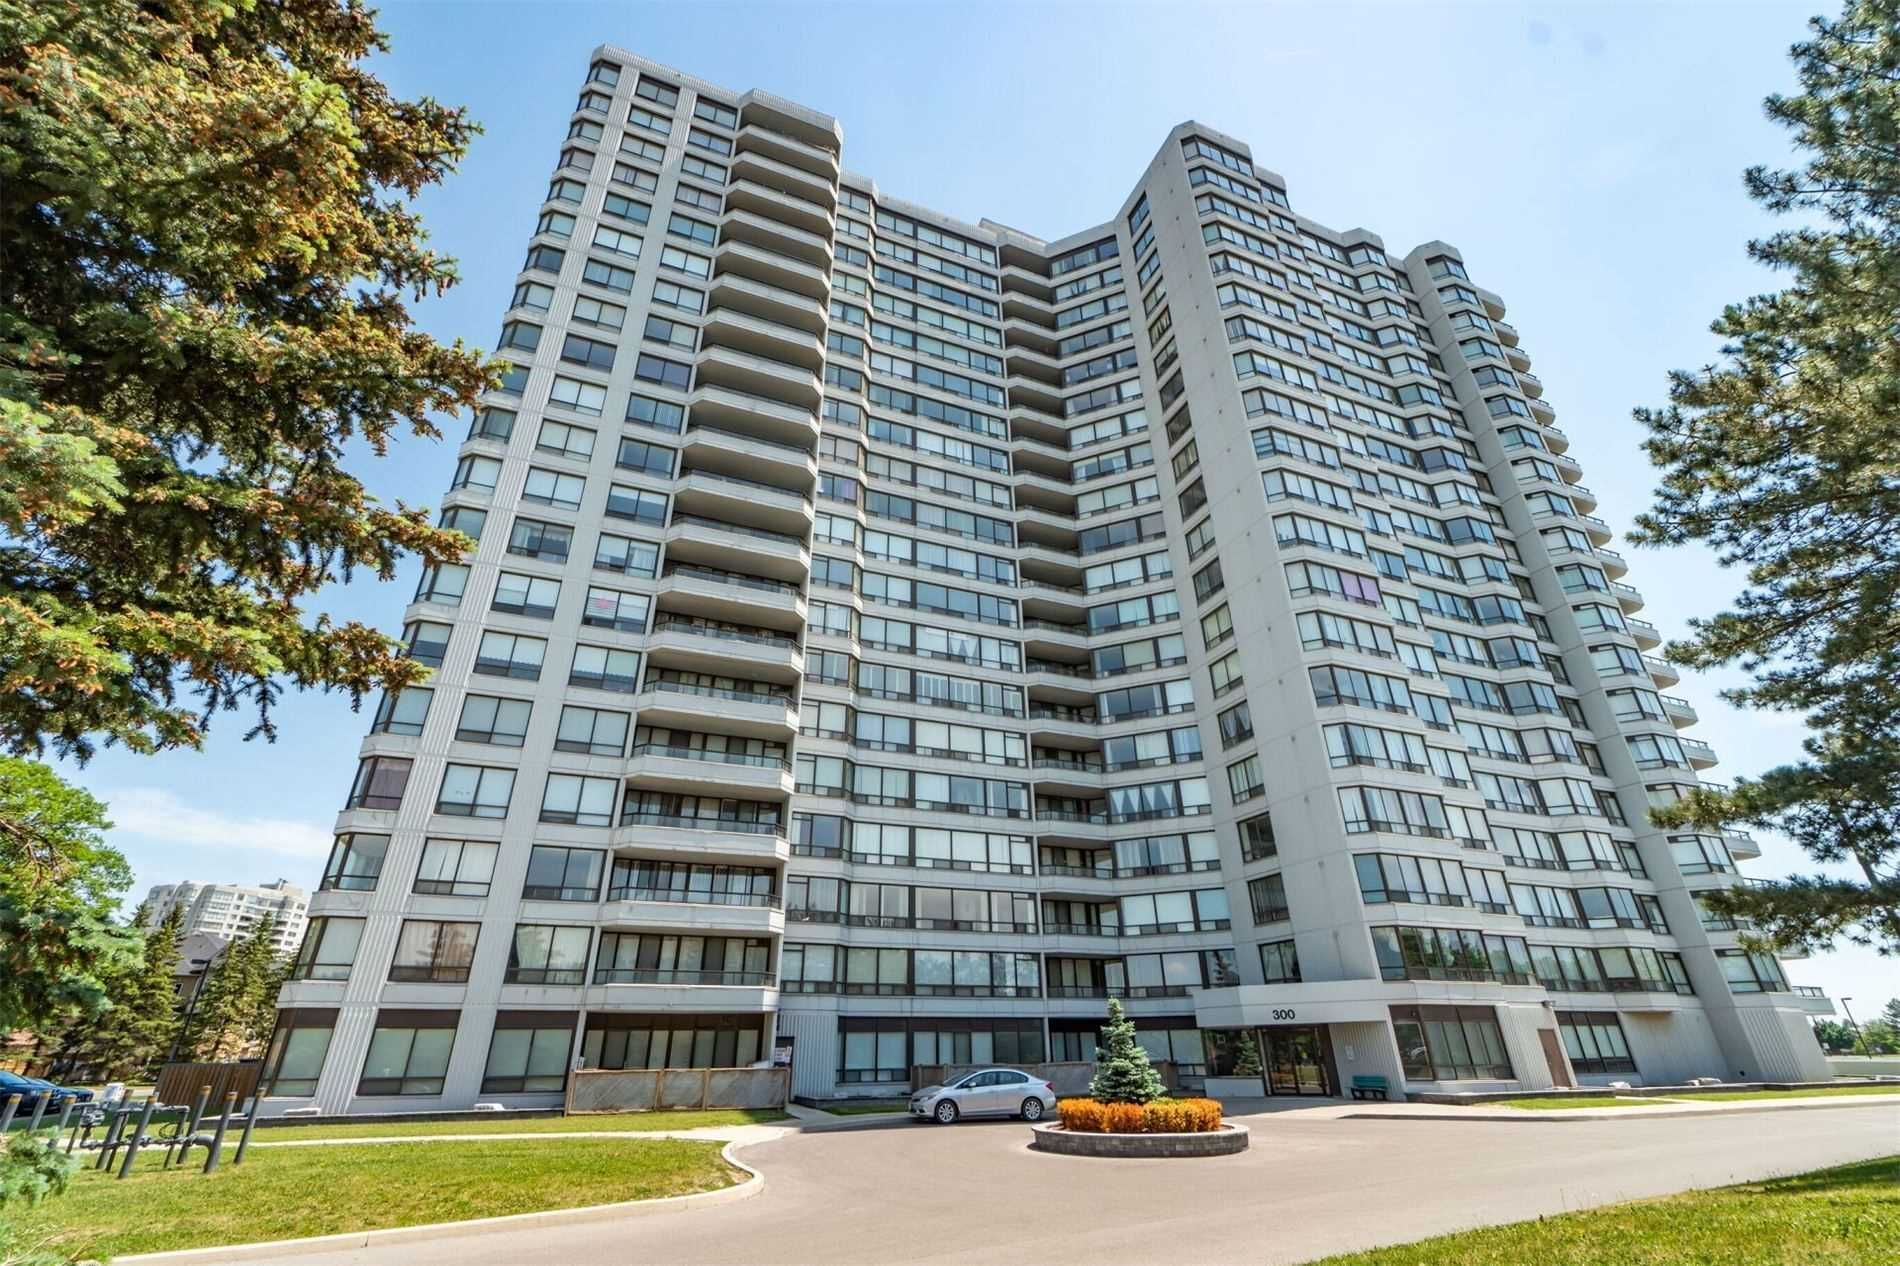 300 Alton Towers Circ, unit 702 for sale in Toronto - image #1